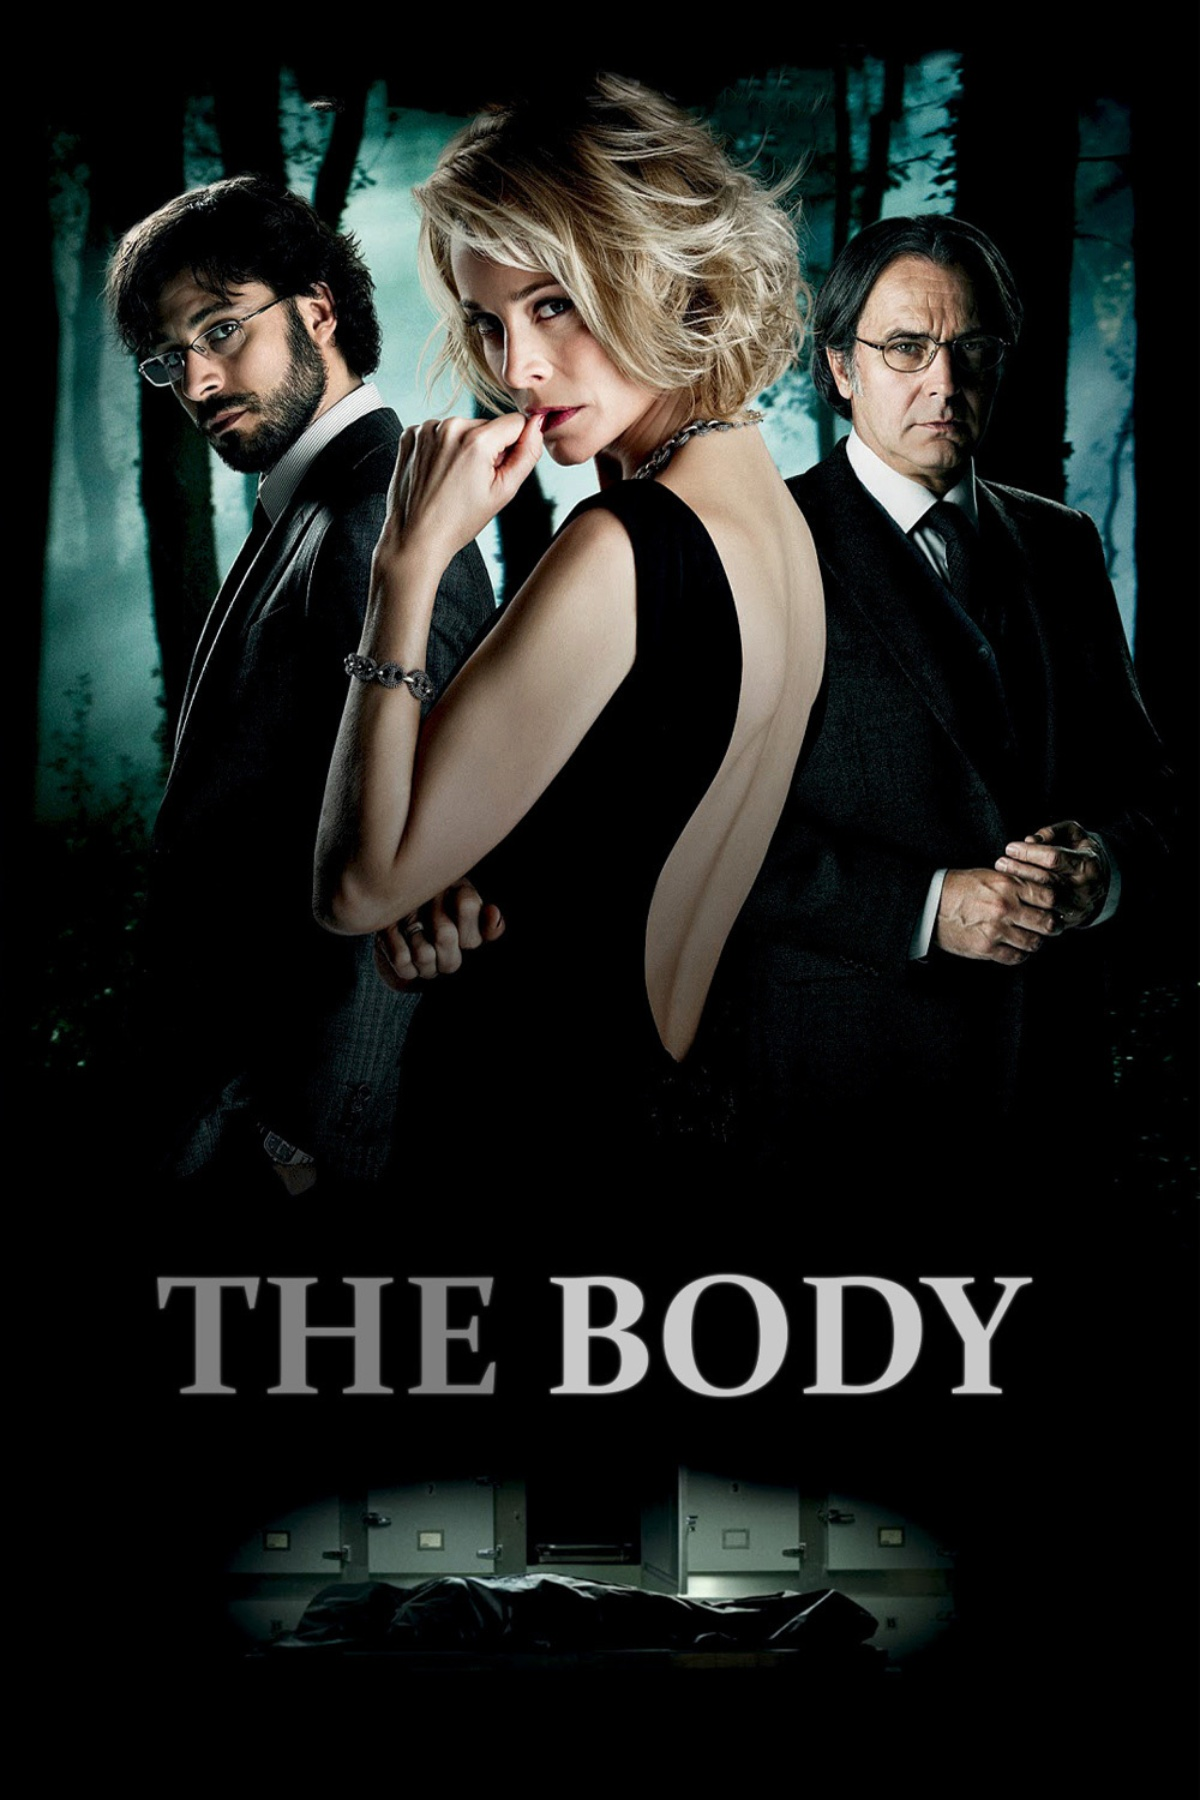 Body shots watch online